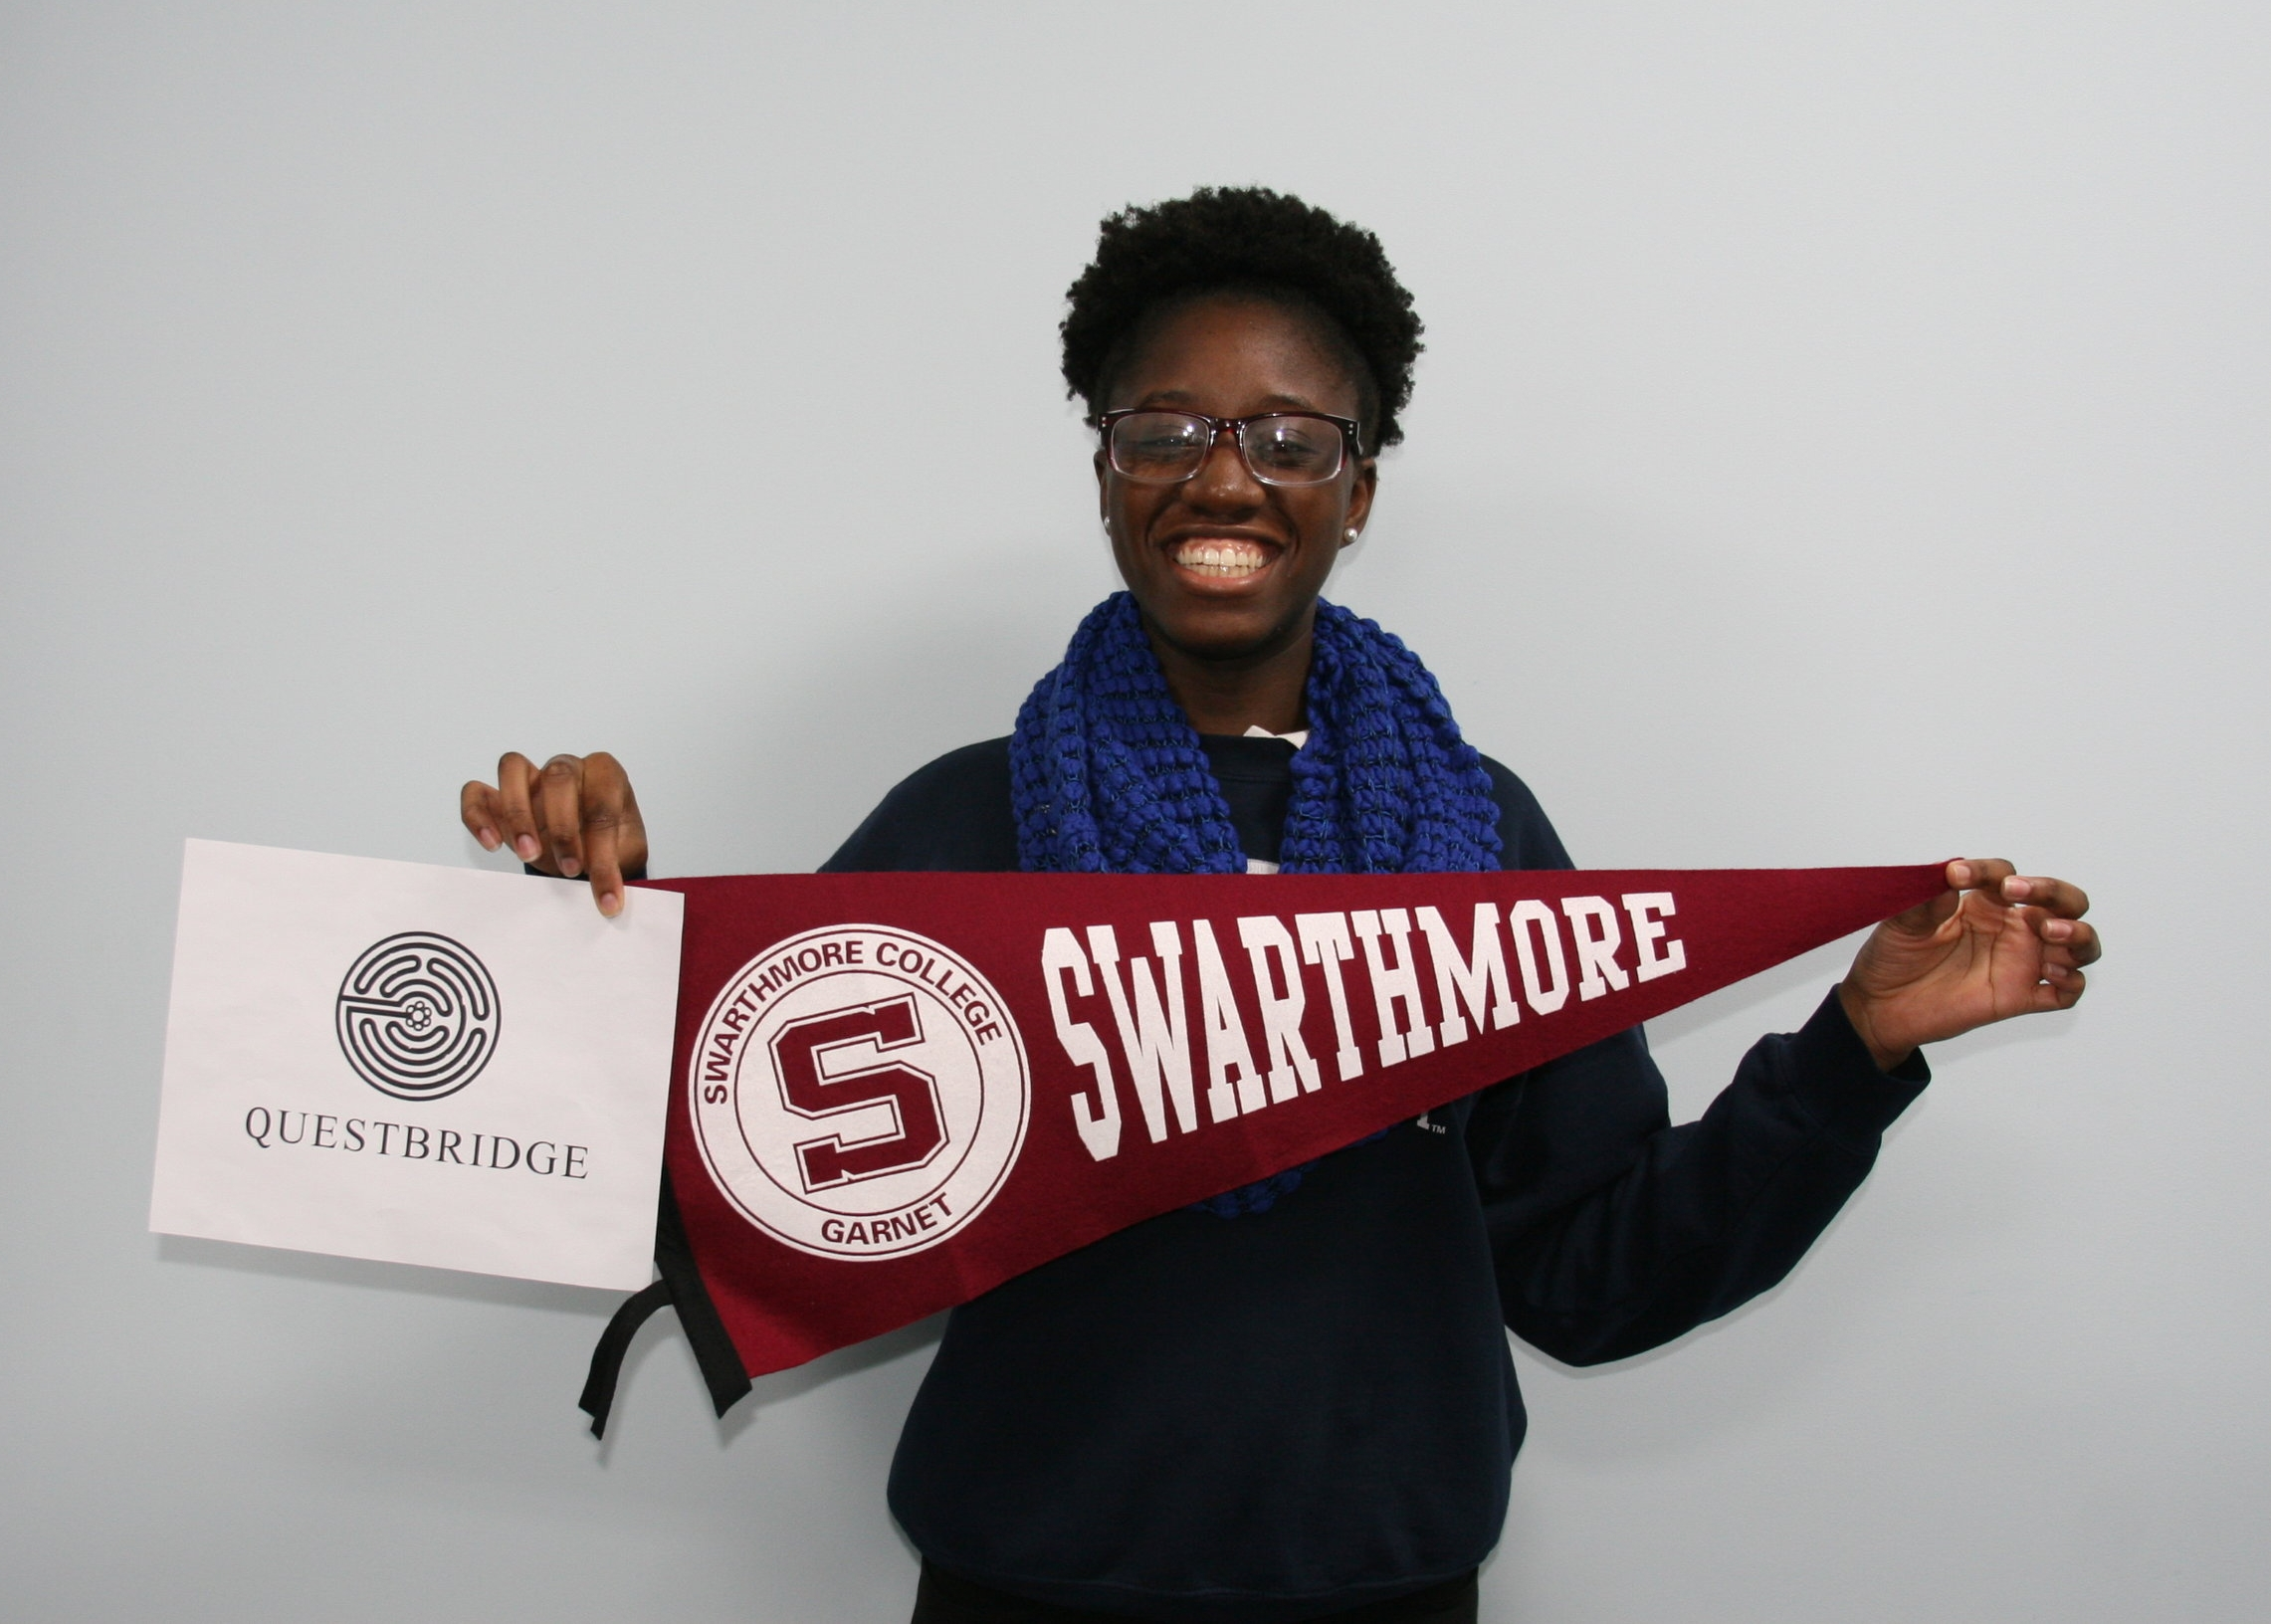 Amy-Ann has found out she was accepted to Swarthmore College with a full scholarship!